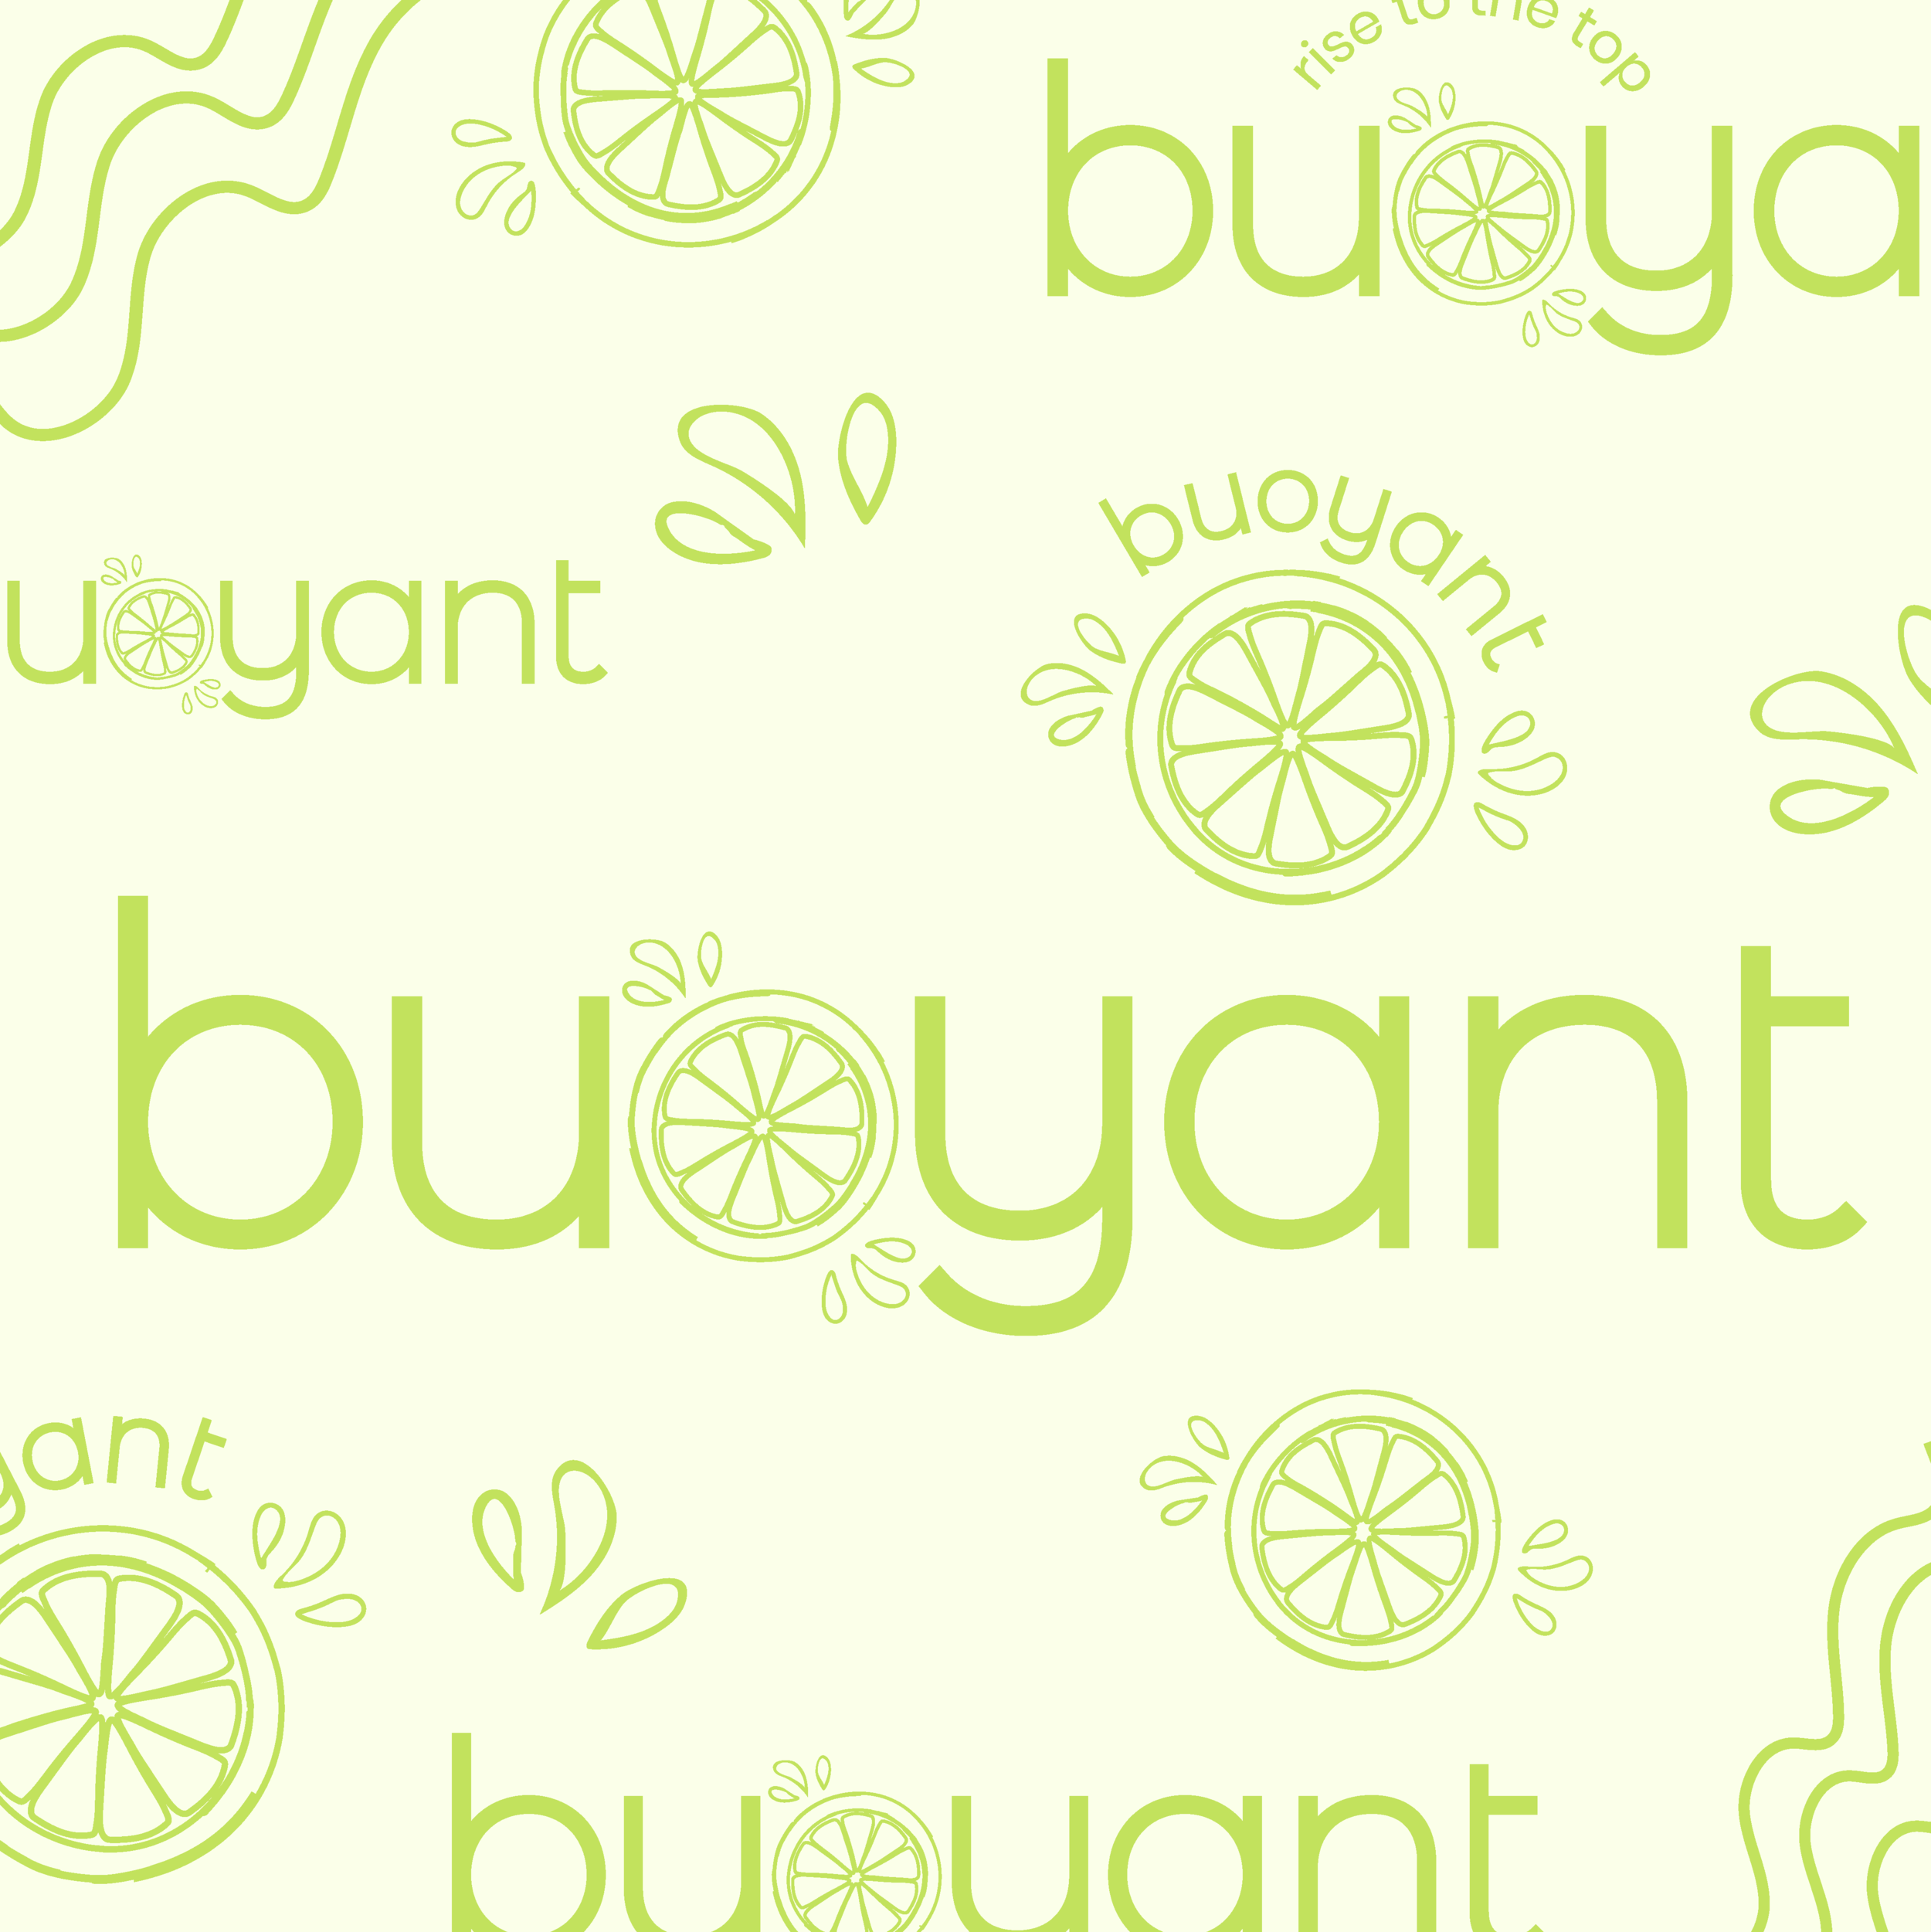 Buoyant Marketing Inbound Marketing Agency Florida Brand and Logo Design by Kindly by Kelsea